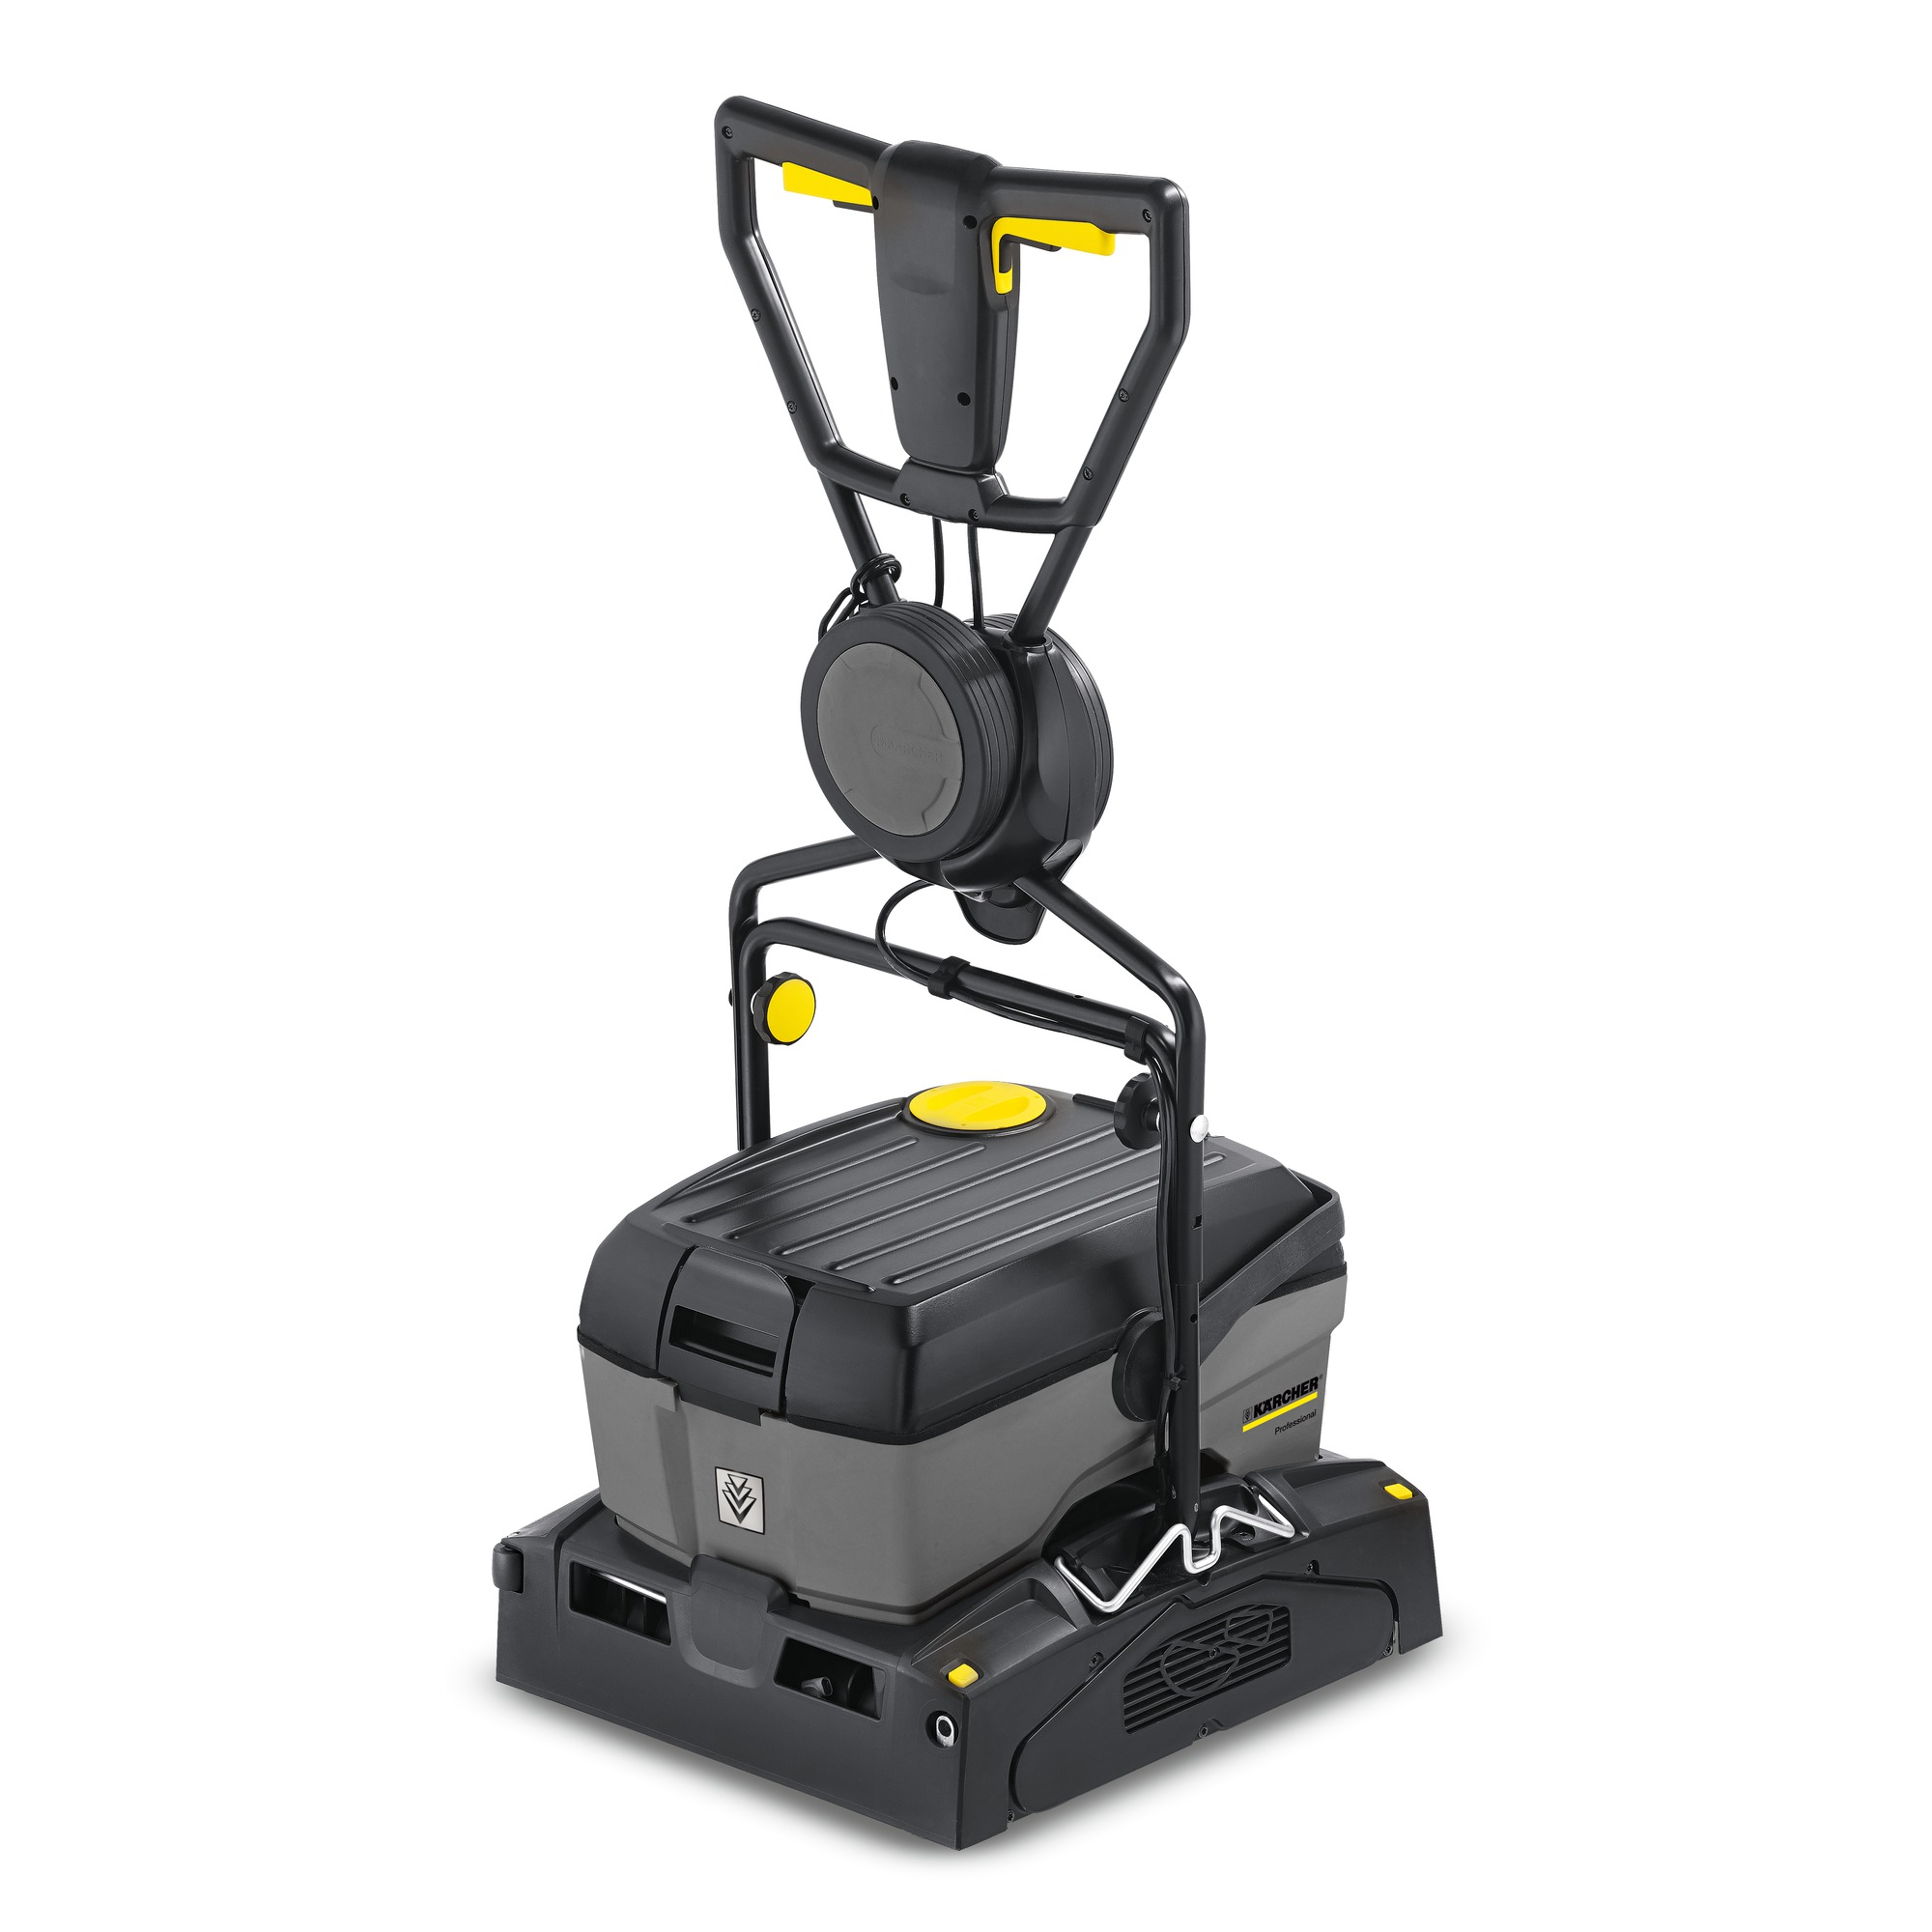 BR 40/10 CI Adv 1.783-316.0 KARCHER - KARCHER PREMIER CENTER